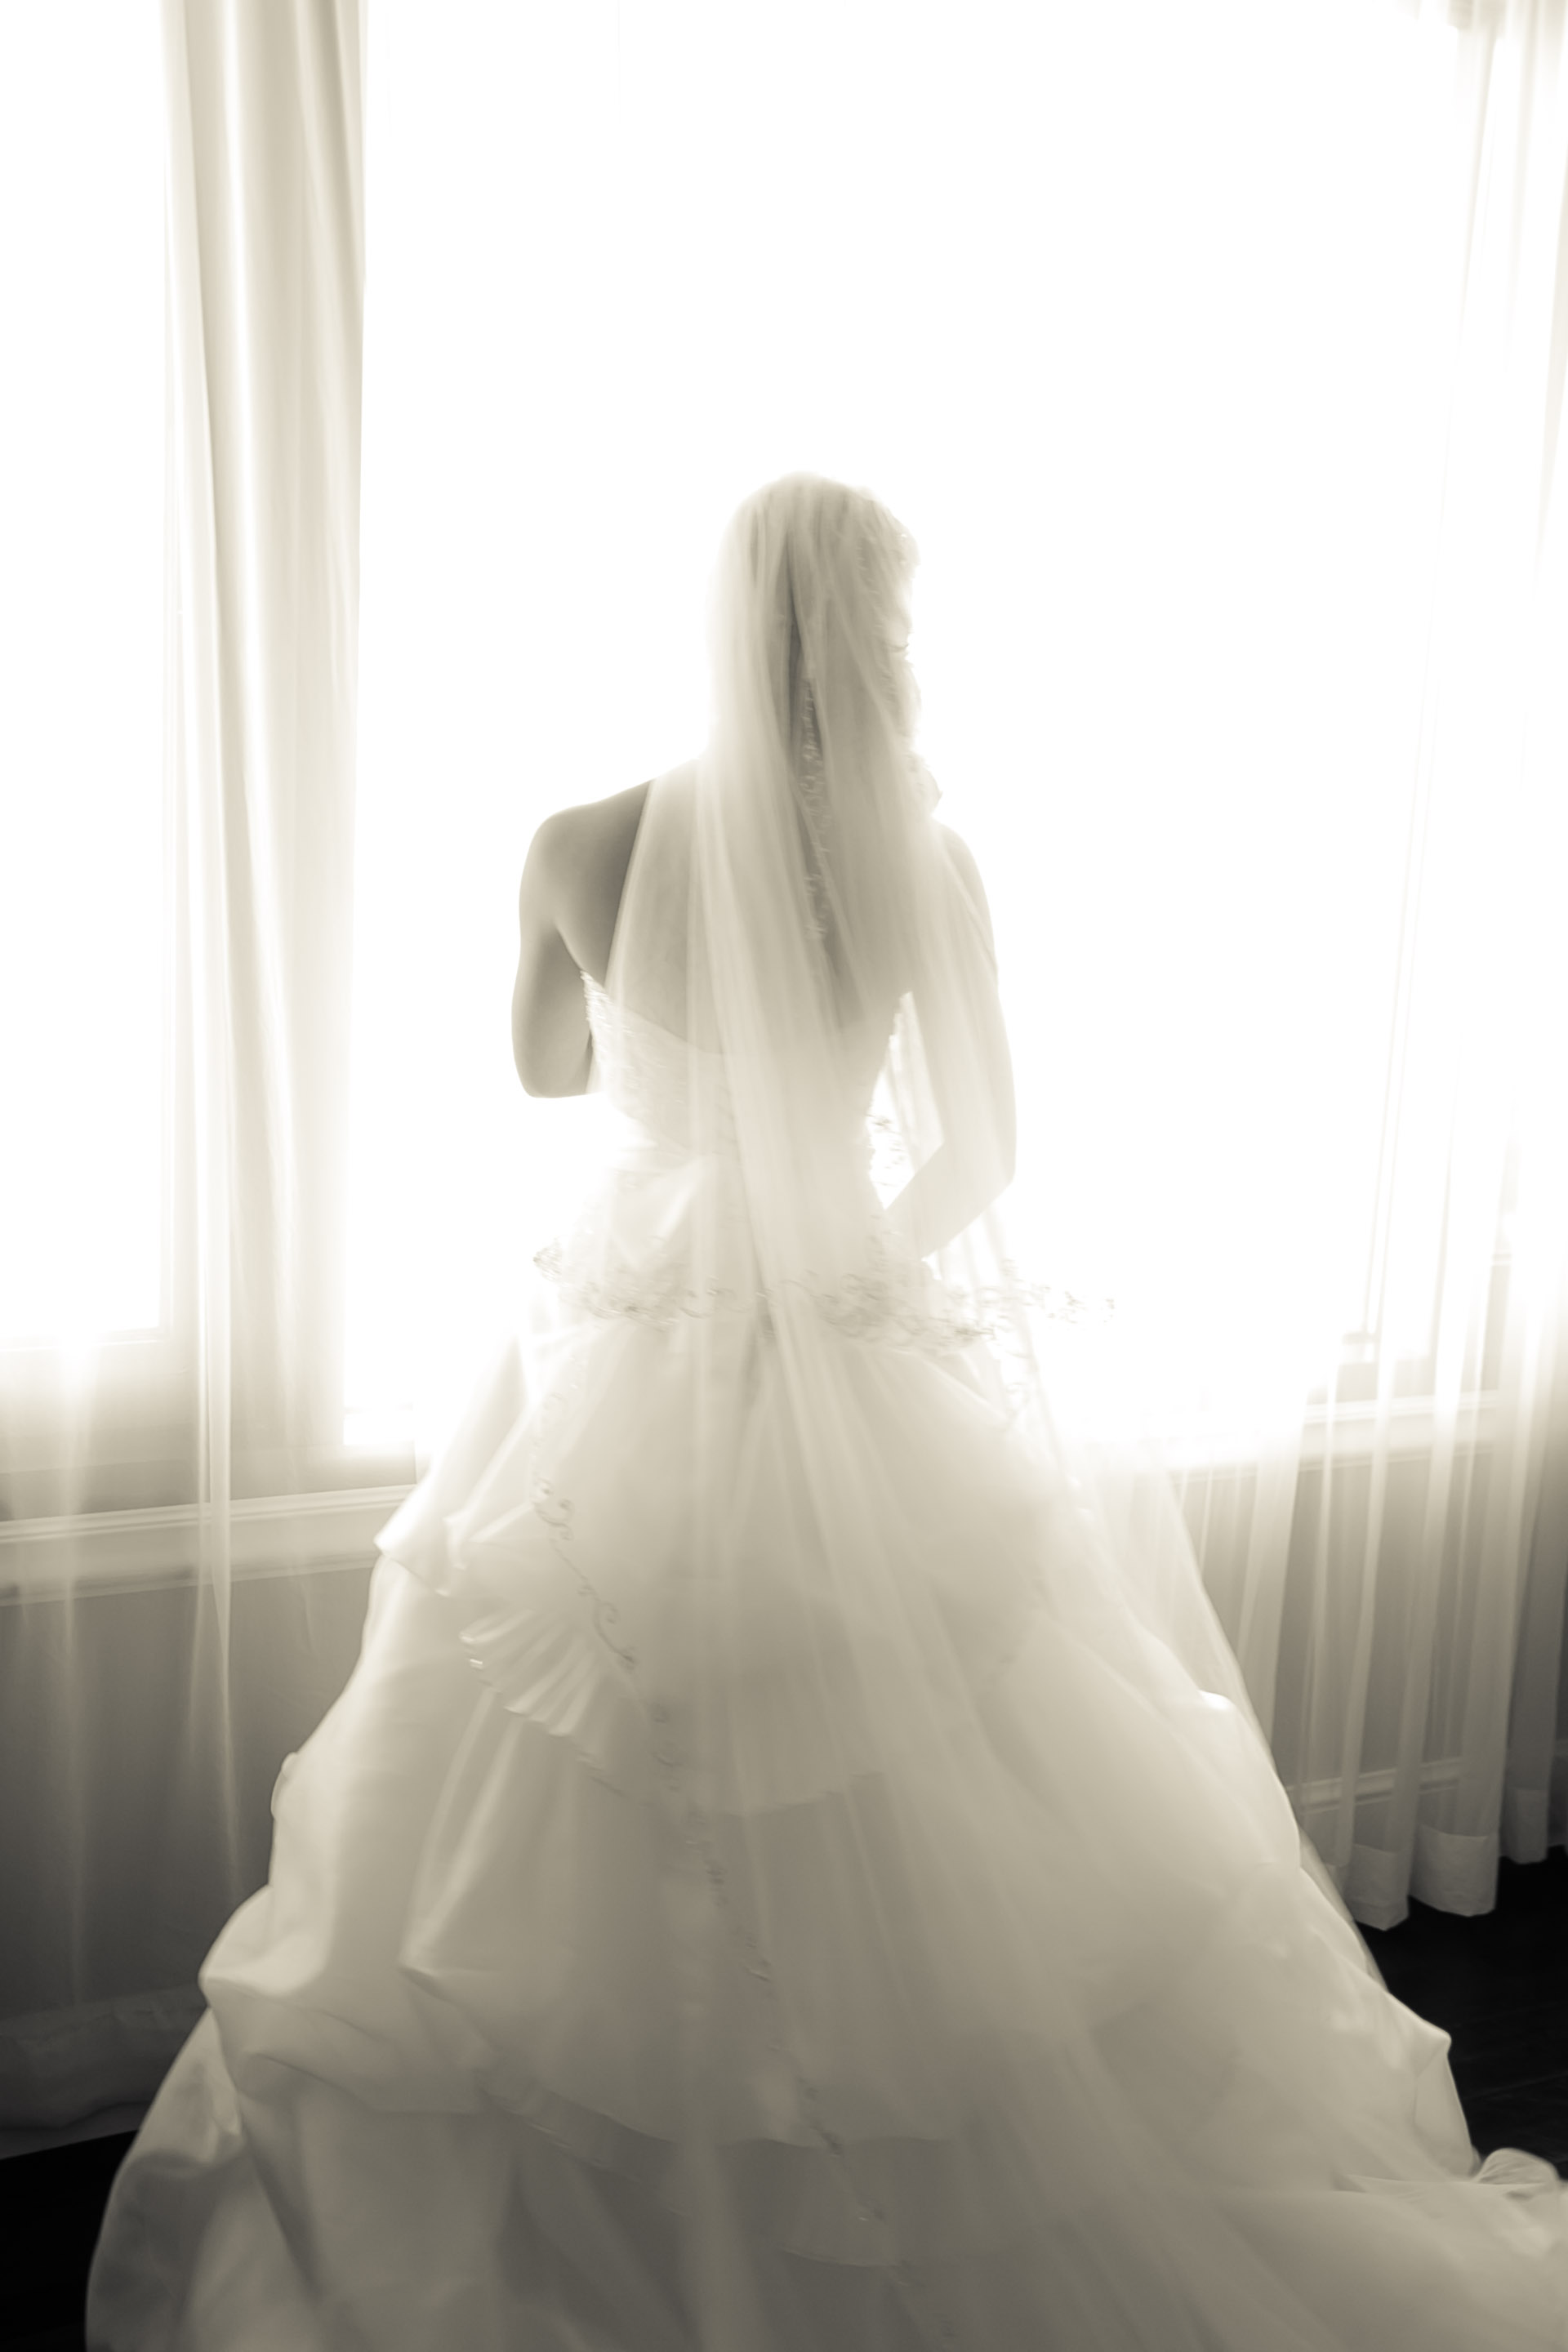 four seasons westlake village, bride, bridal portraits, los angeles wedding venues, los angeles wedding photography, chris holt photography, bridal portrait, silhouette, bridal prep